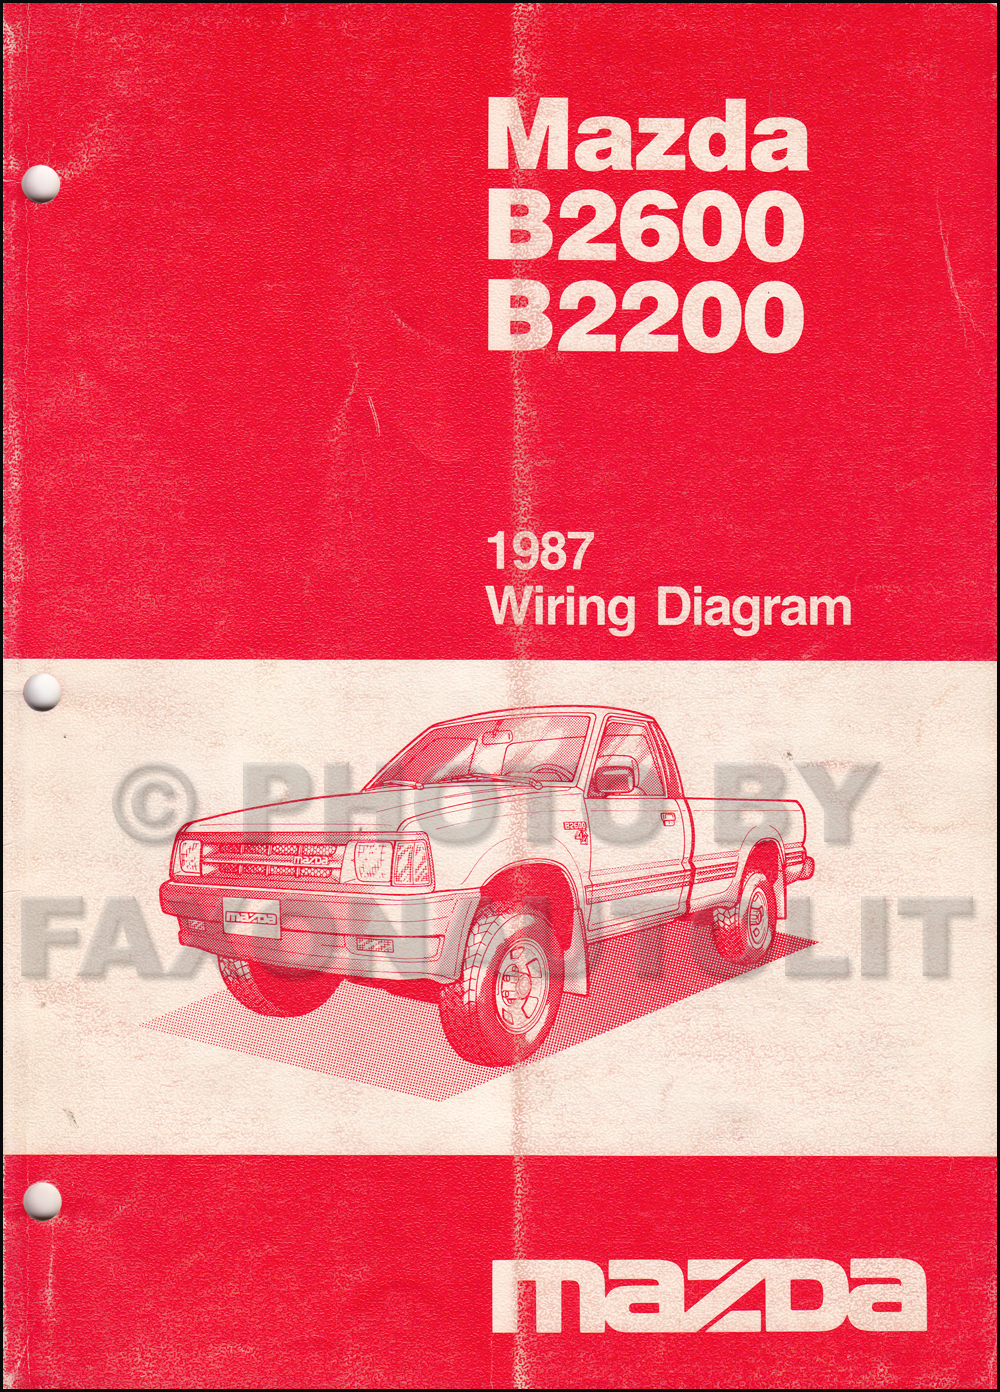 1987 Mazda B2200 B2600 Pickup Truck Wiring Diagram Manual ... on mazda b2600 parts, mazda 3 wiring diagram, mazda 5 wiring diagram, mazda b2600 engine, mazda parts diagram, mazda b2600 firing order, mazda protege wiring diagram, mazda b2600 body diagram, mazda b4000 wiring diagram, mazda b2600 exhaust system, mazda miata wiring diagram, 1989 mazda b2200 engine diagram, mazda b2200 wiring-diagram, mazda mpv wiring diagram, mazda b2600 antenna, mazda b3000 wiring diagram, mazda 323 wiring diagram, mazda 6 wiring diagram, mazda b2600 transmission, 1987 mazda b2000 engine diagram,